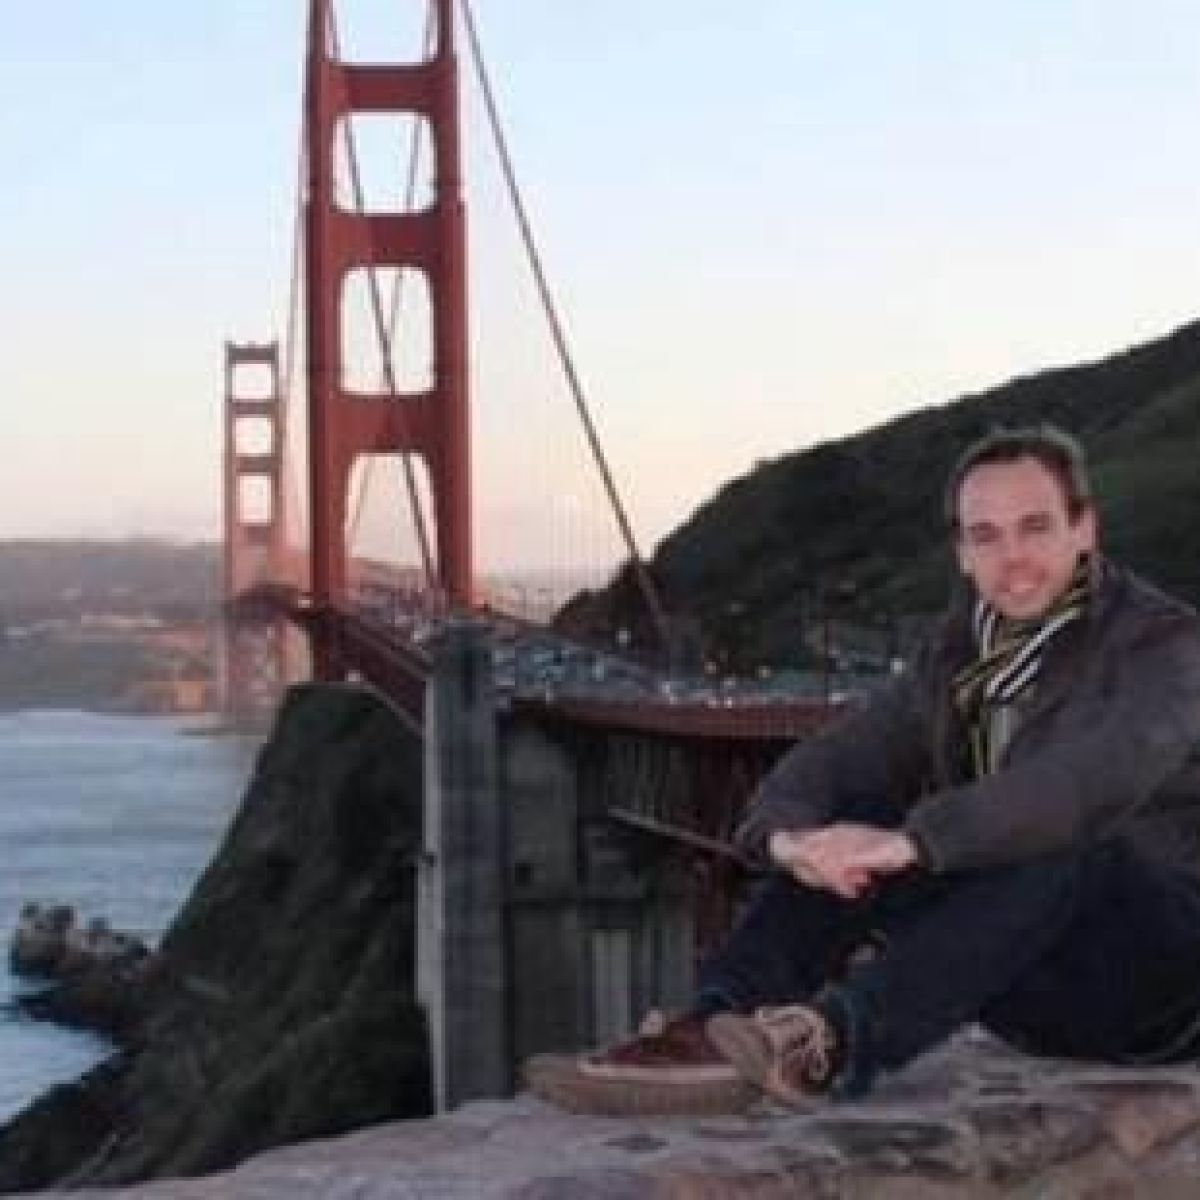 Police search home of co-pilot after Germanwings crash